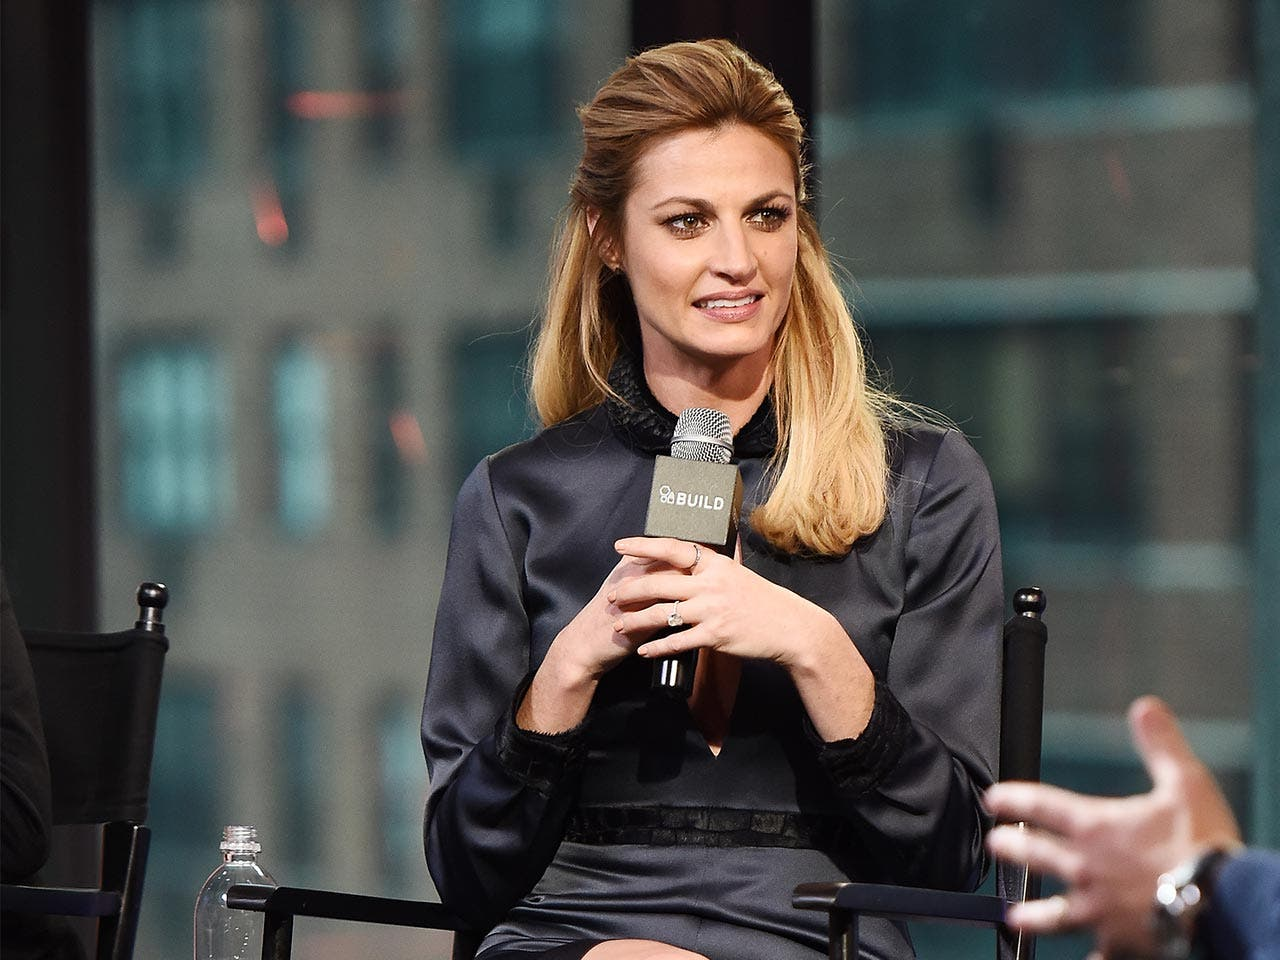 Erin Andrews | Nicholas Hunt/Getty Images